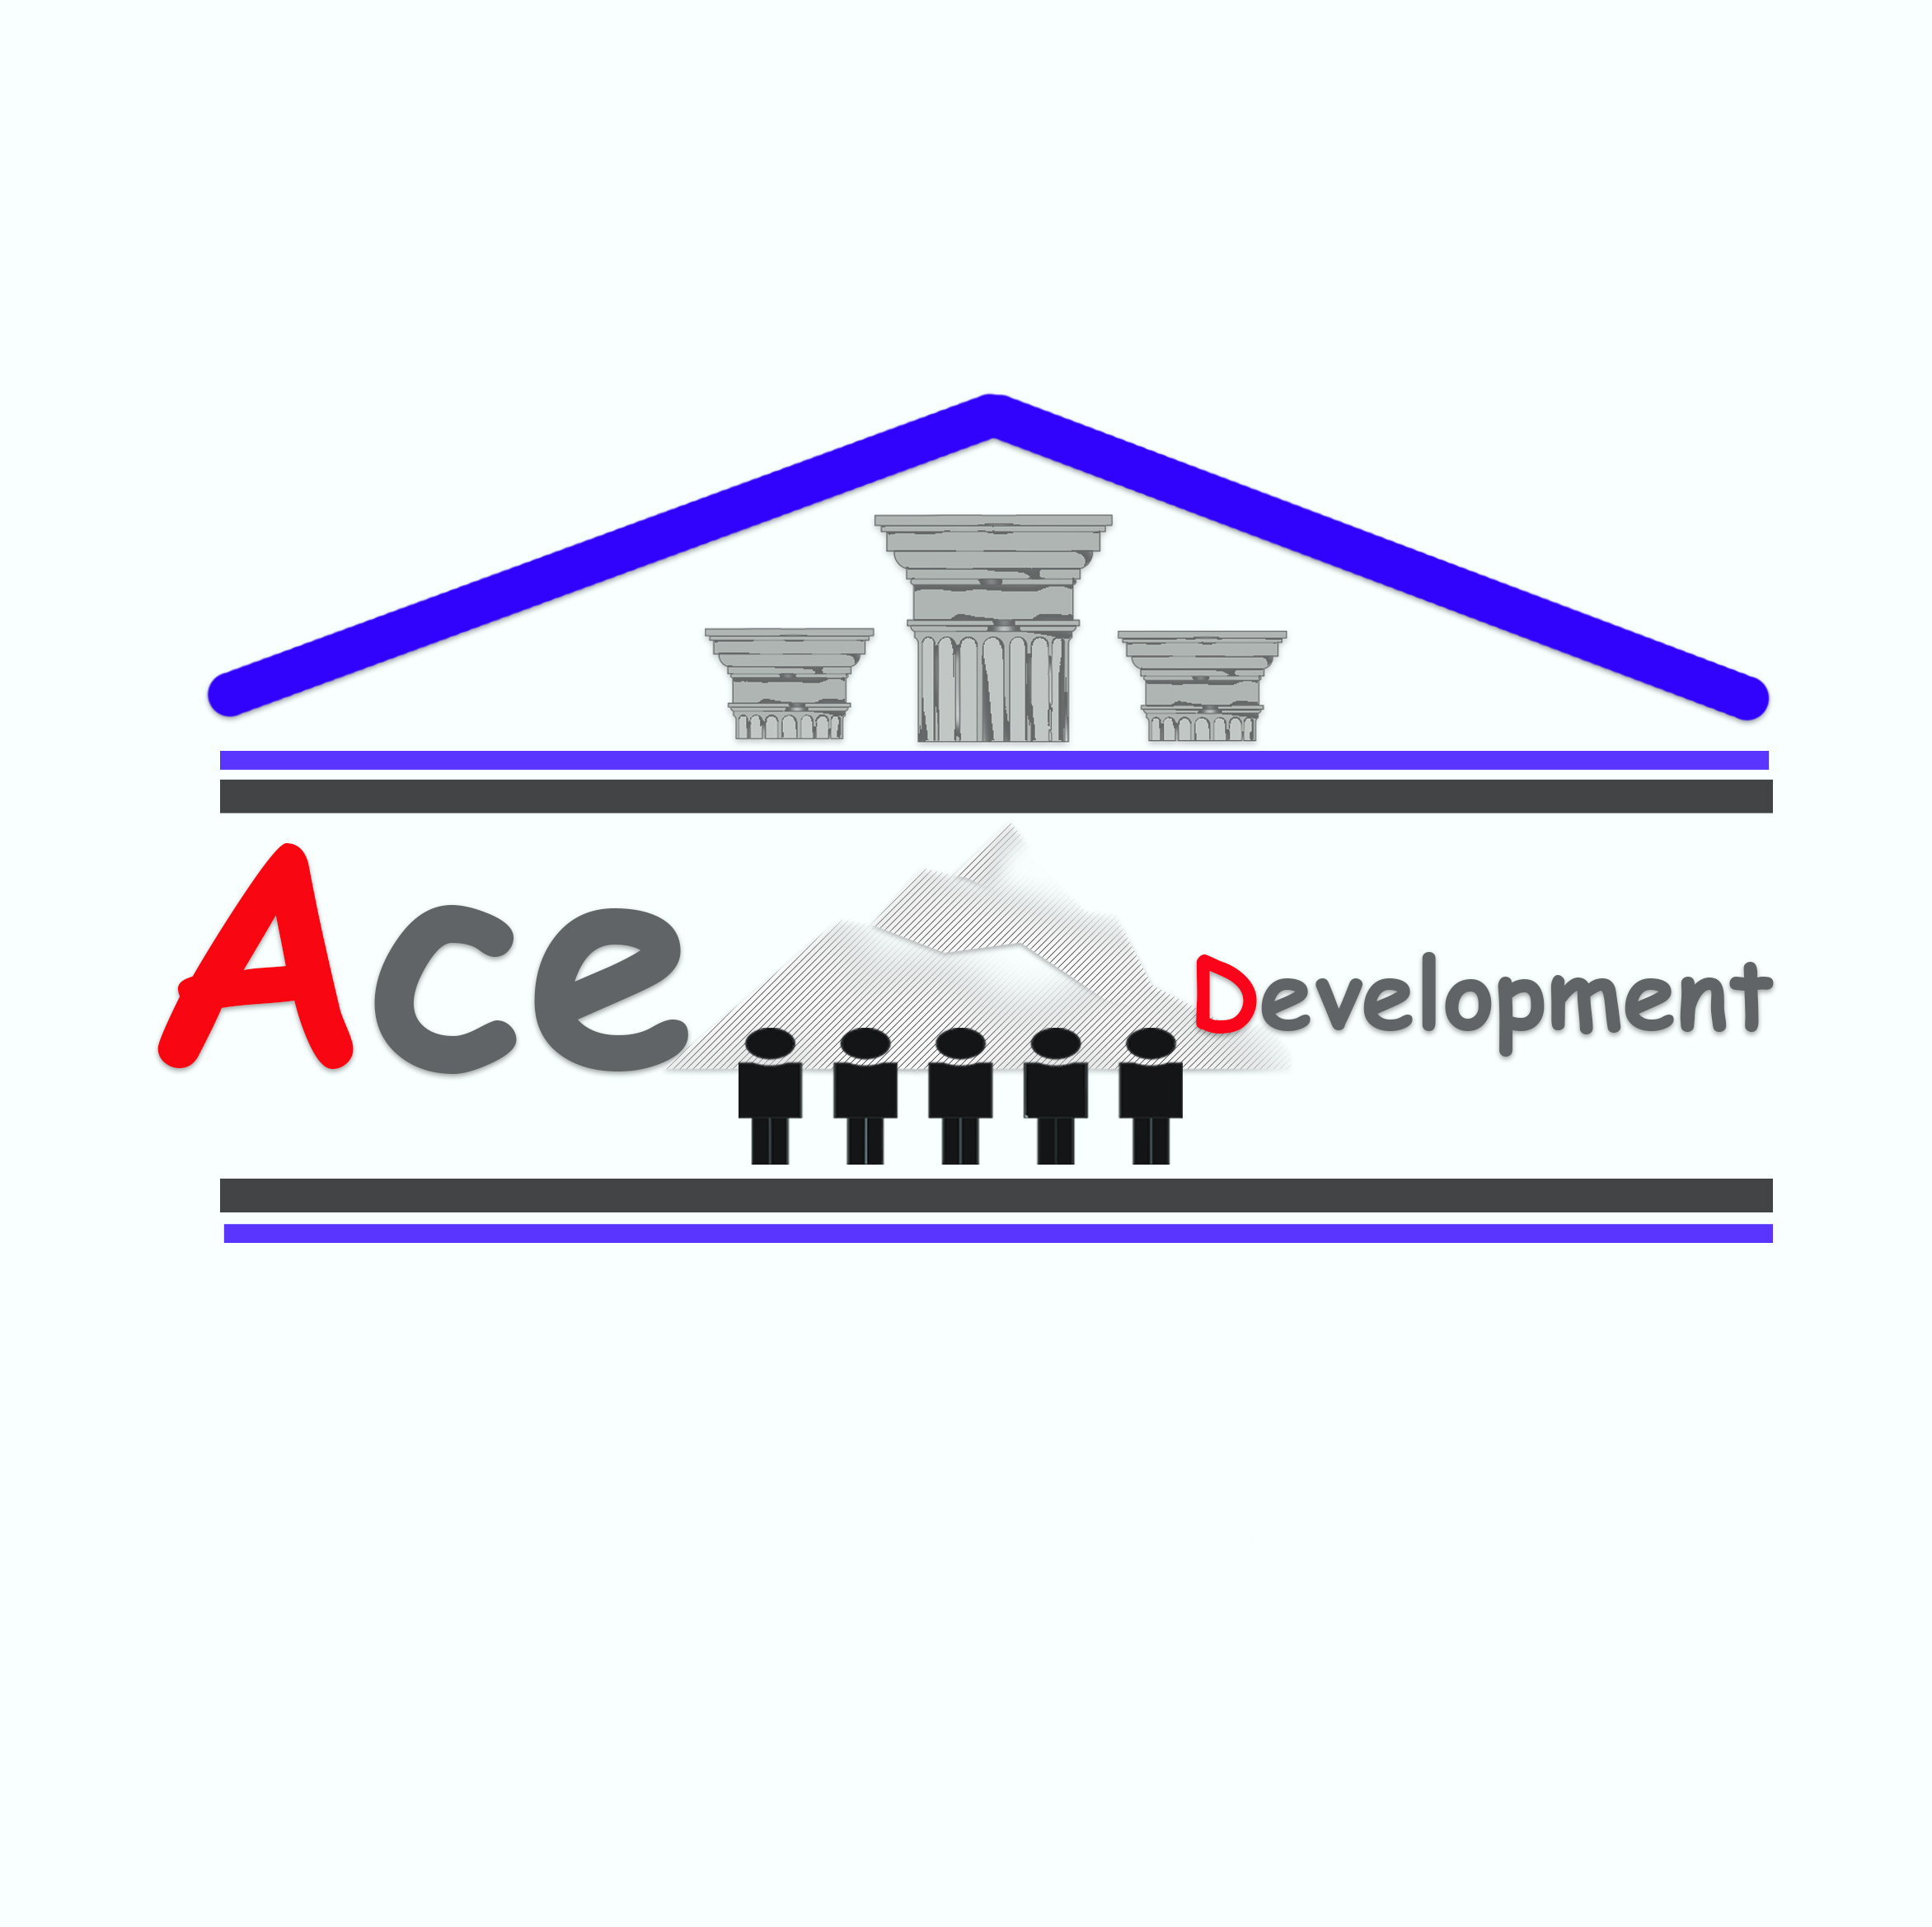 Logo Design by Niño rodel Adan - Entry No. 9 in the Logo Design Contest Fun Logo Design for Ace development.